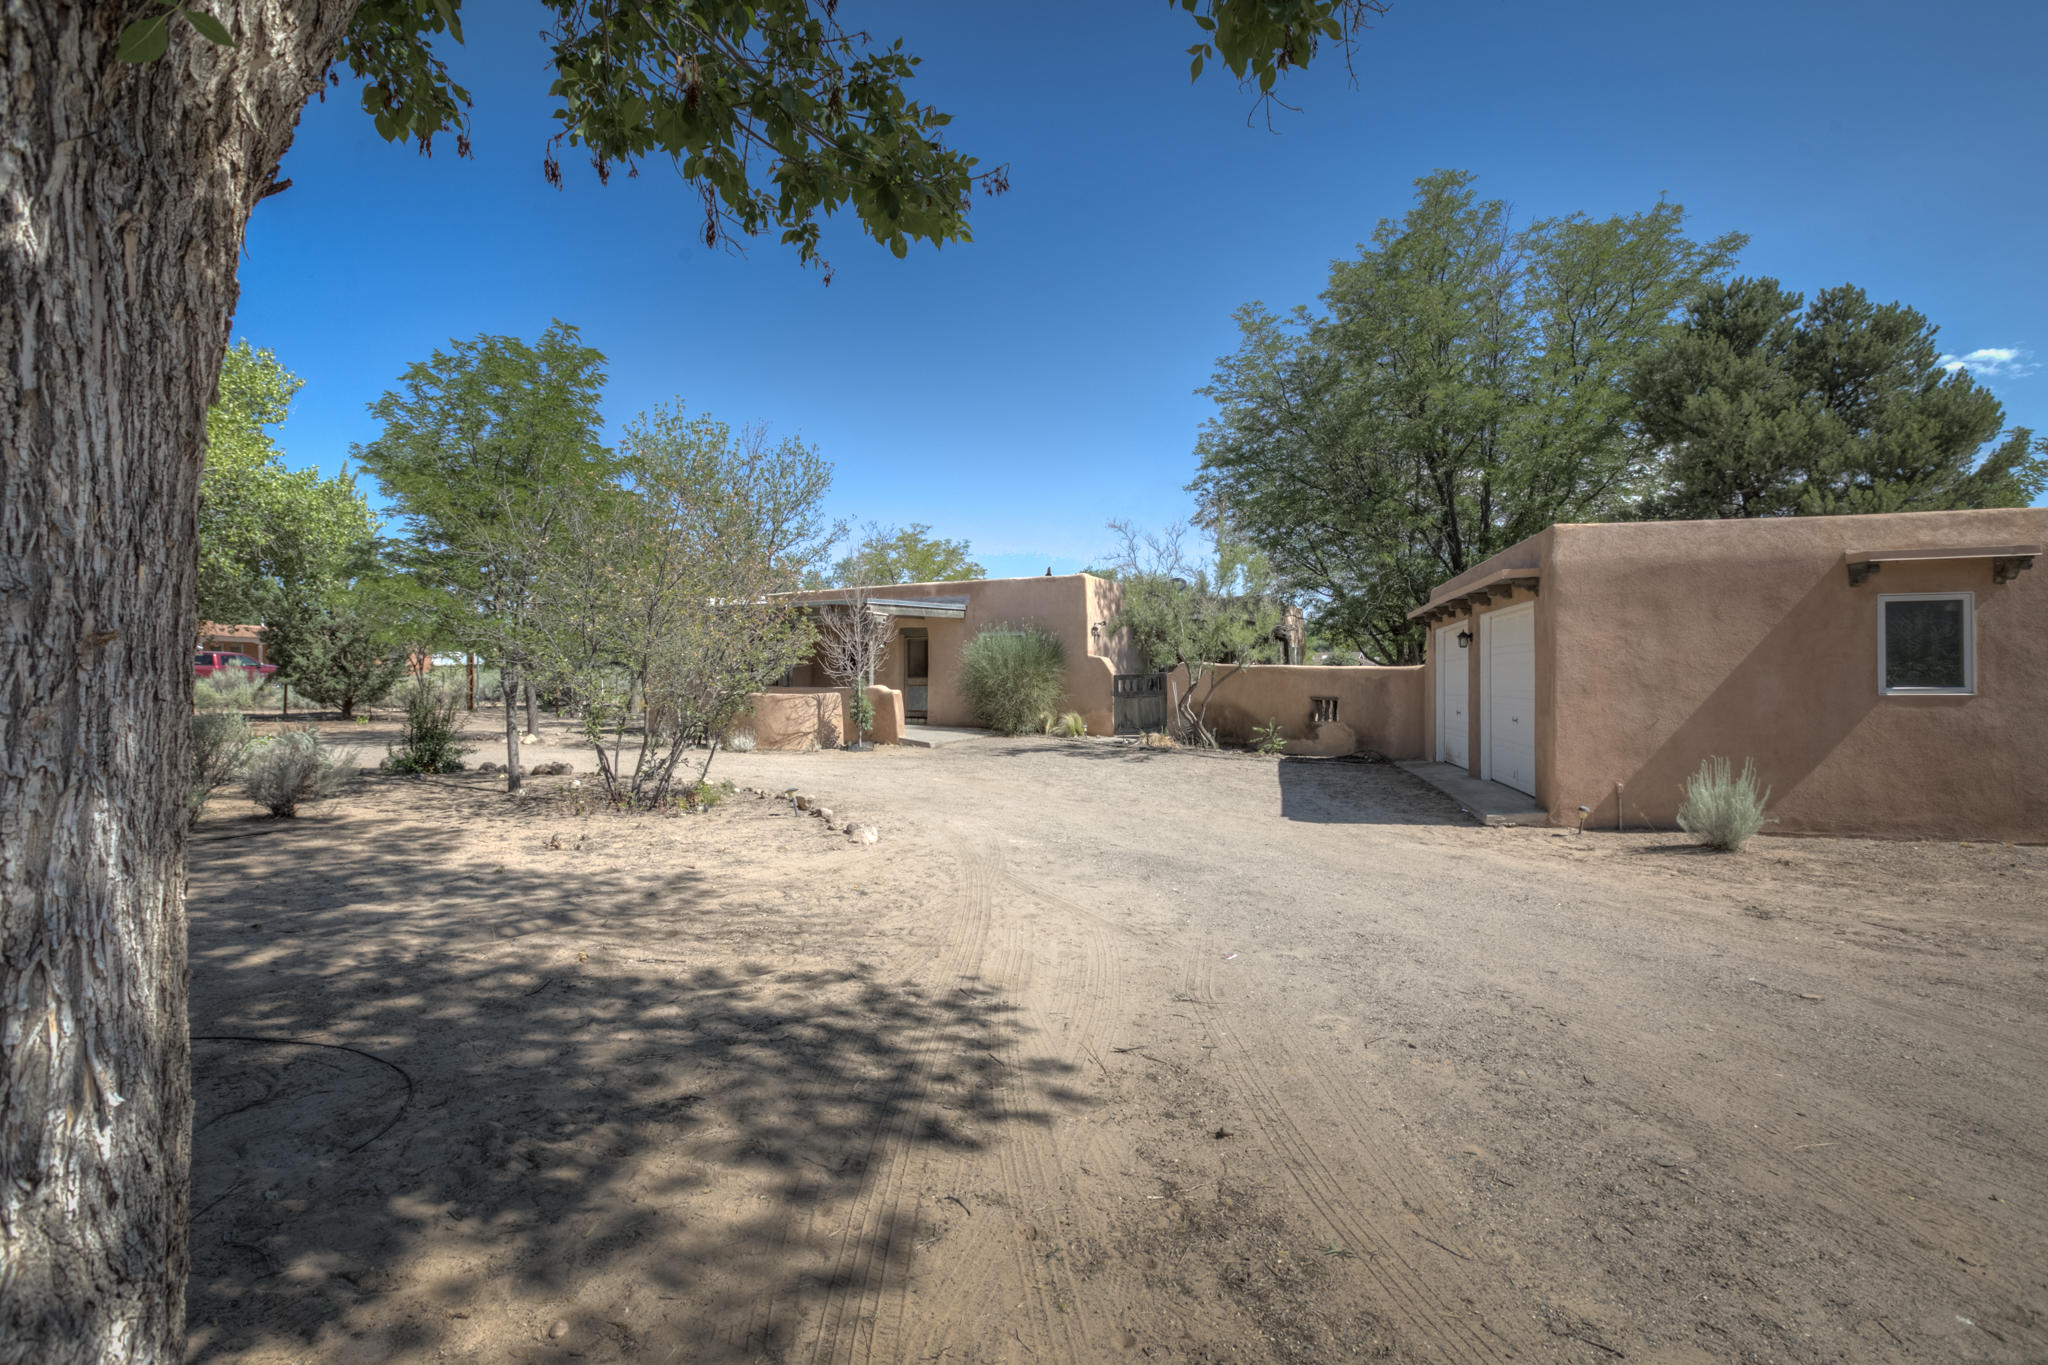 You just have to check out this charming Adobe/Pueblo home with  handcrafted moldings and hand-carved doors.100 % Solar energy, panels are owned by seller, 2 wells 1 private and 1 irrigation. There is also a detached Casita/Studio with a 3/4 bath. 2 separate garages with carport space as well. Check out the adobe playhouse and kiva doghouse built into the courtyard wall!! This one of a kind home is nicely situated on an acre.The well, septic and home Inspections have been completed recently.  Both the well and septic inspections passed and the repairs called out on the home inspections are nearly completed.  If buyer wants any inspections it will be at their expense